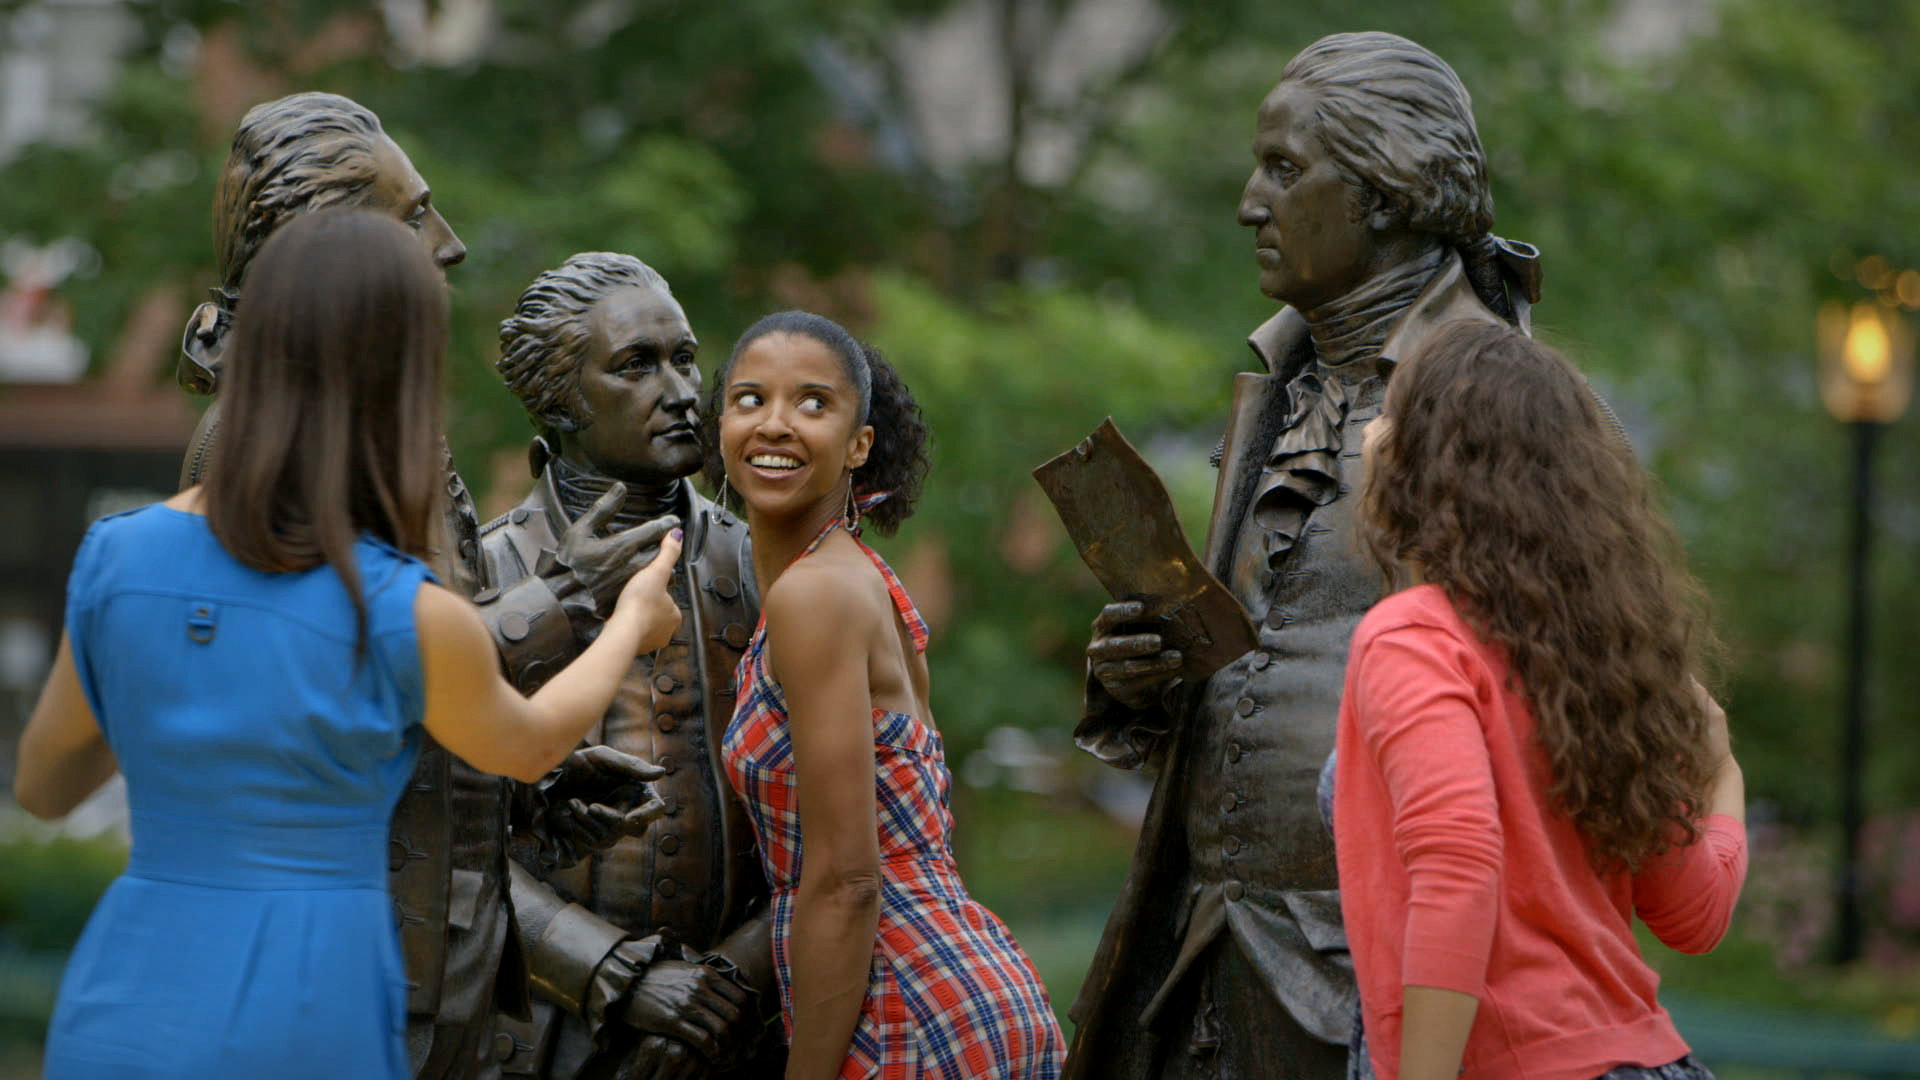 L to R: Phillipa Soo, Renée Elise Goldsberry, and Jasmine Cephas Jones at the Morristown Green in Morristown, NJ, in between filming scenes for Hamilton's America (photo: RadicalMedia).